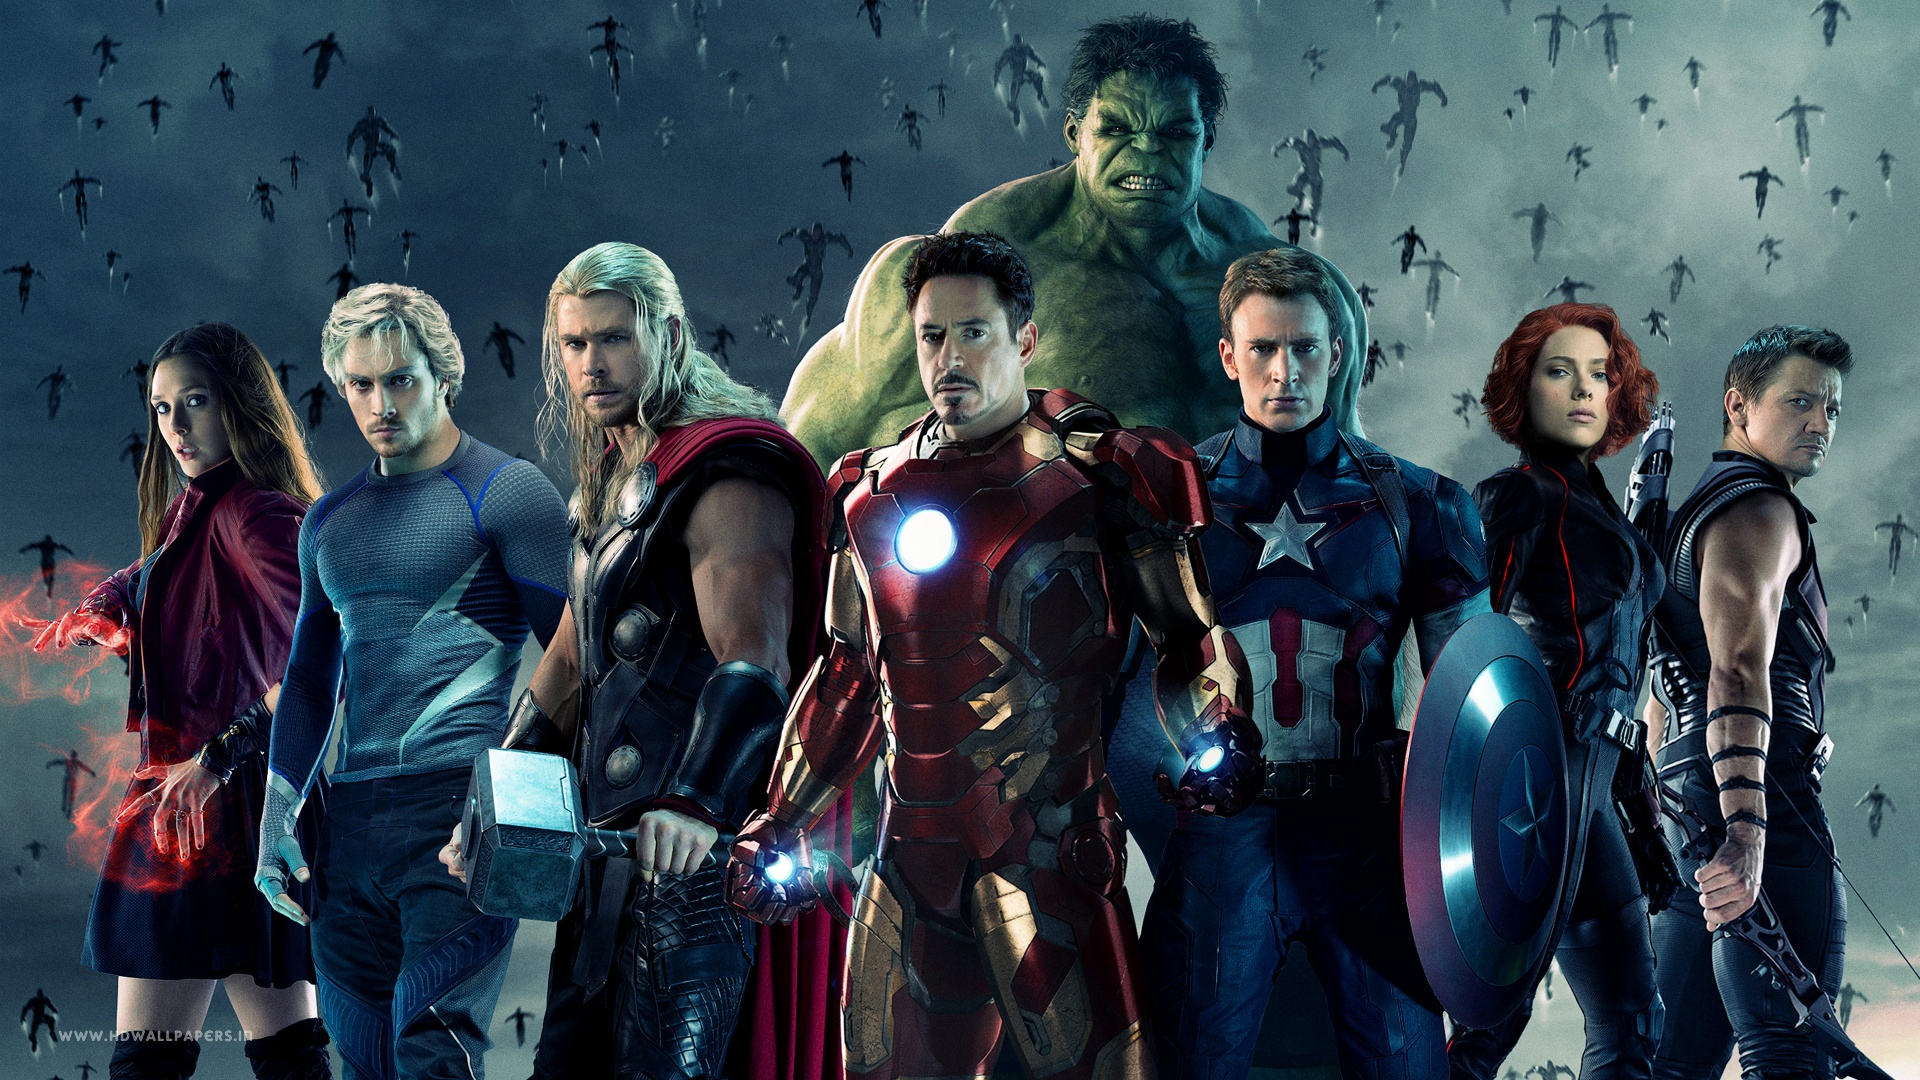 42 avengers hd wallpapers 1080p on wallpapersafari - 1366x768 is 720p or 1080p ...